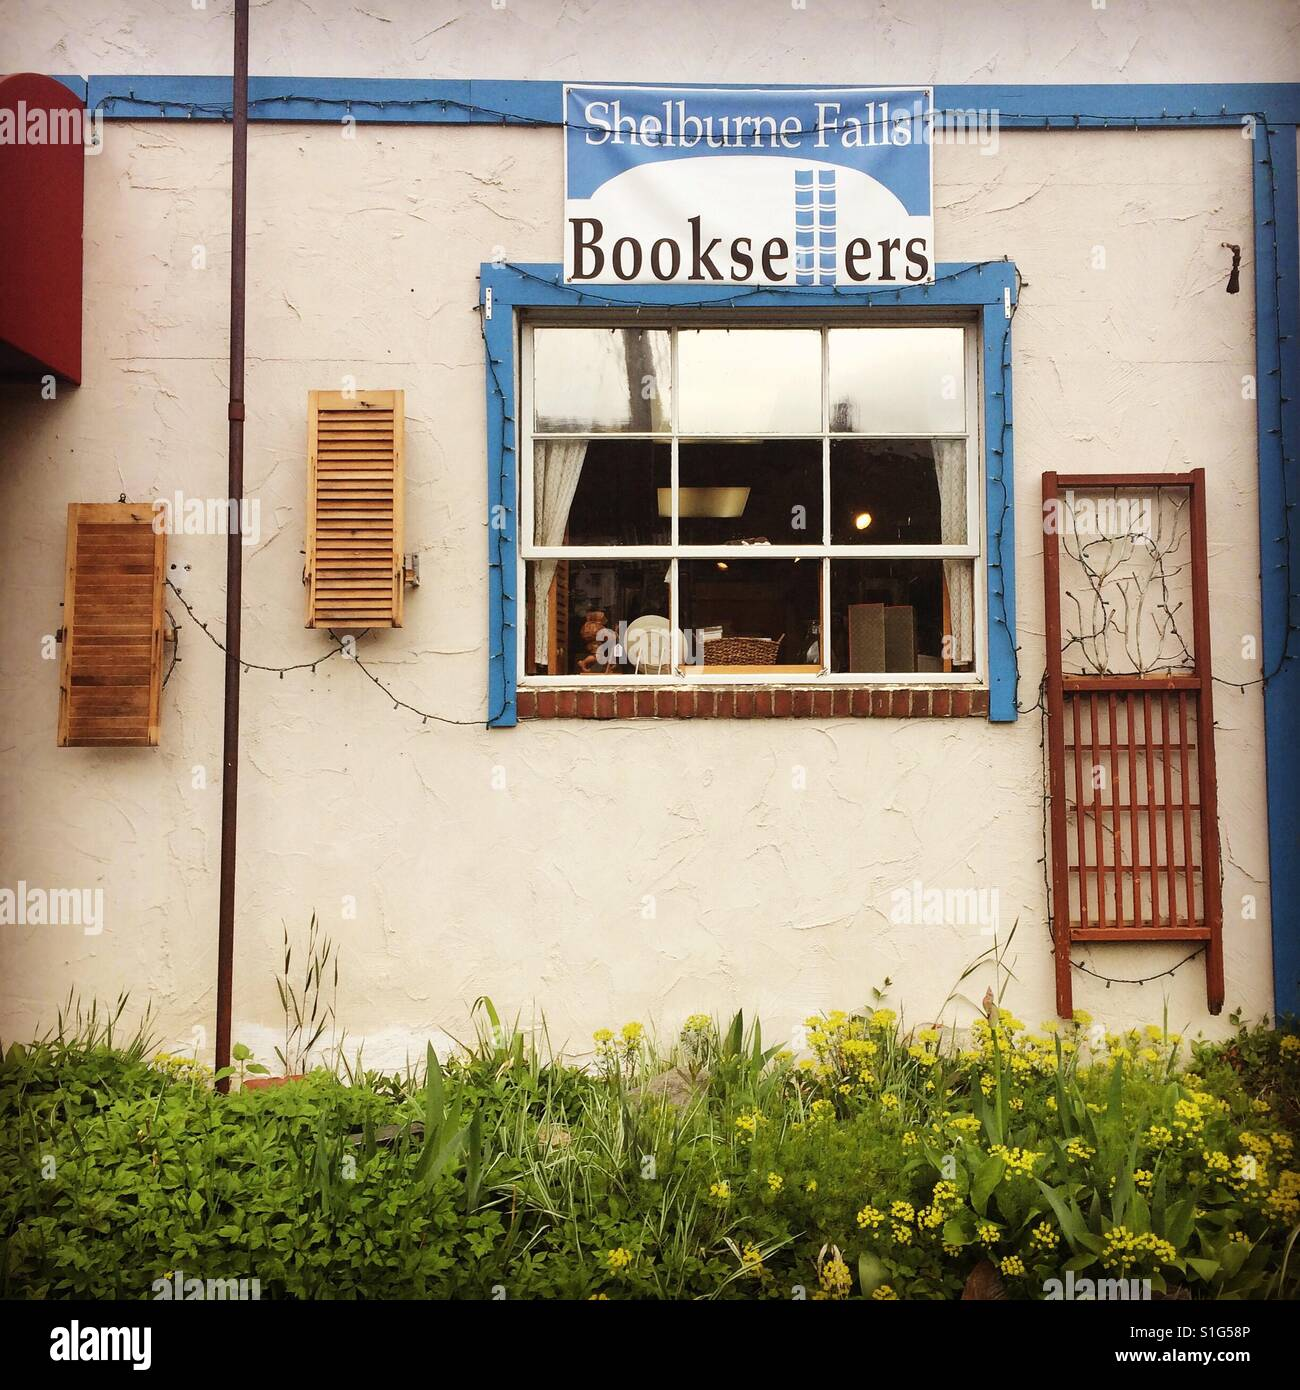 Shelburne Falls Booksellers, Shelburne Falls, Massachusetts - Stock Image